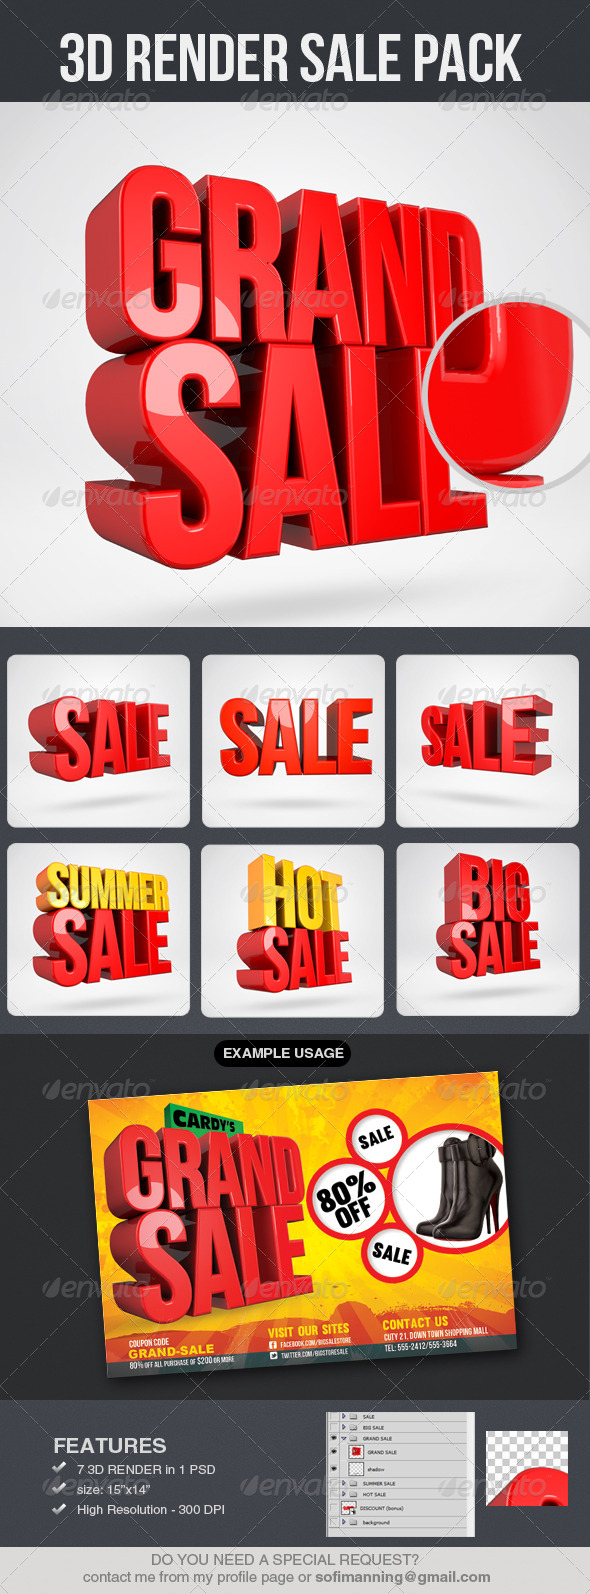 3D Render Sale Pack - Text 3D Renders